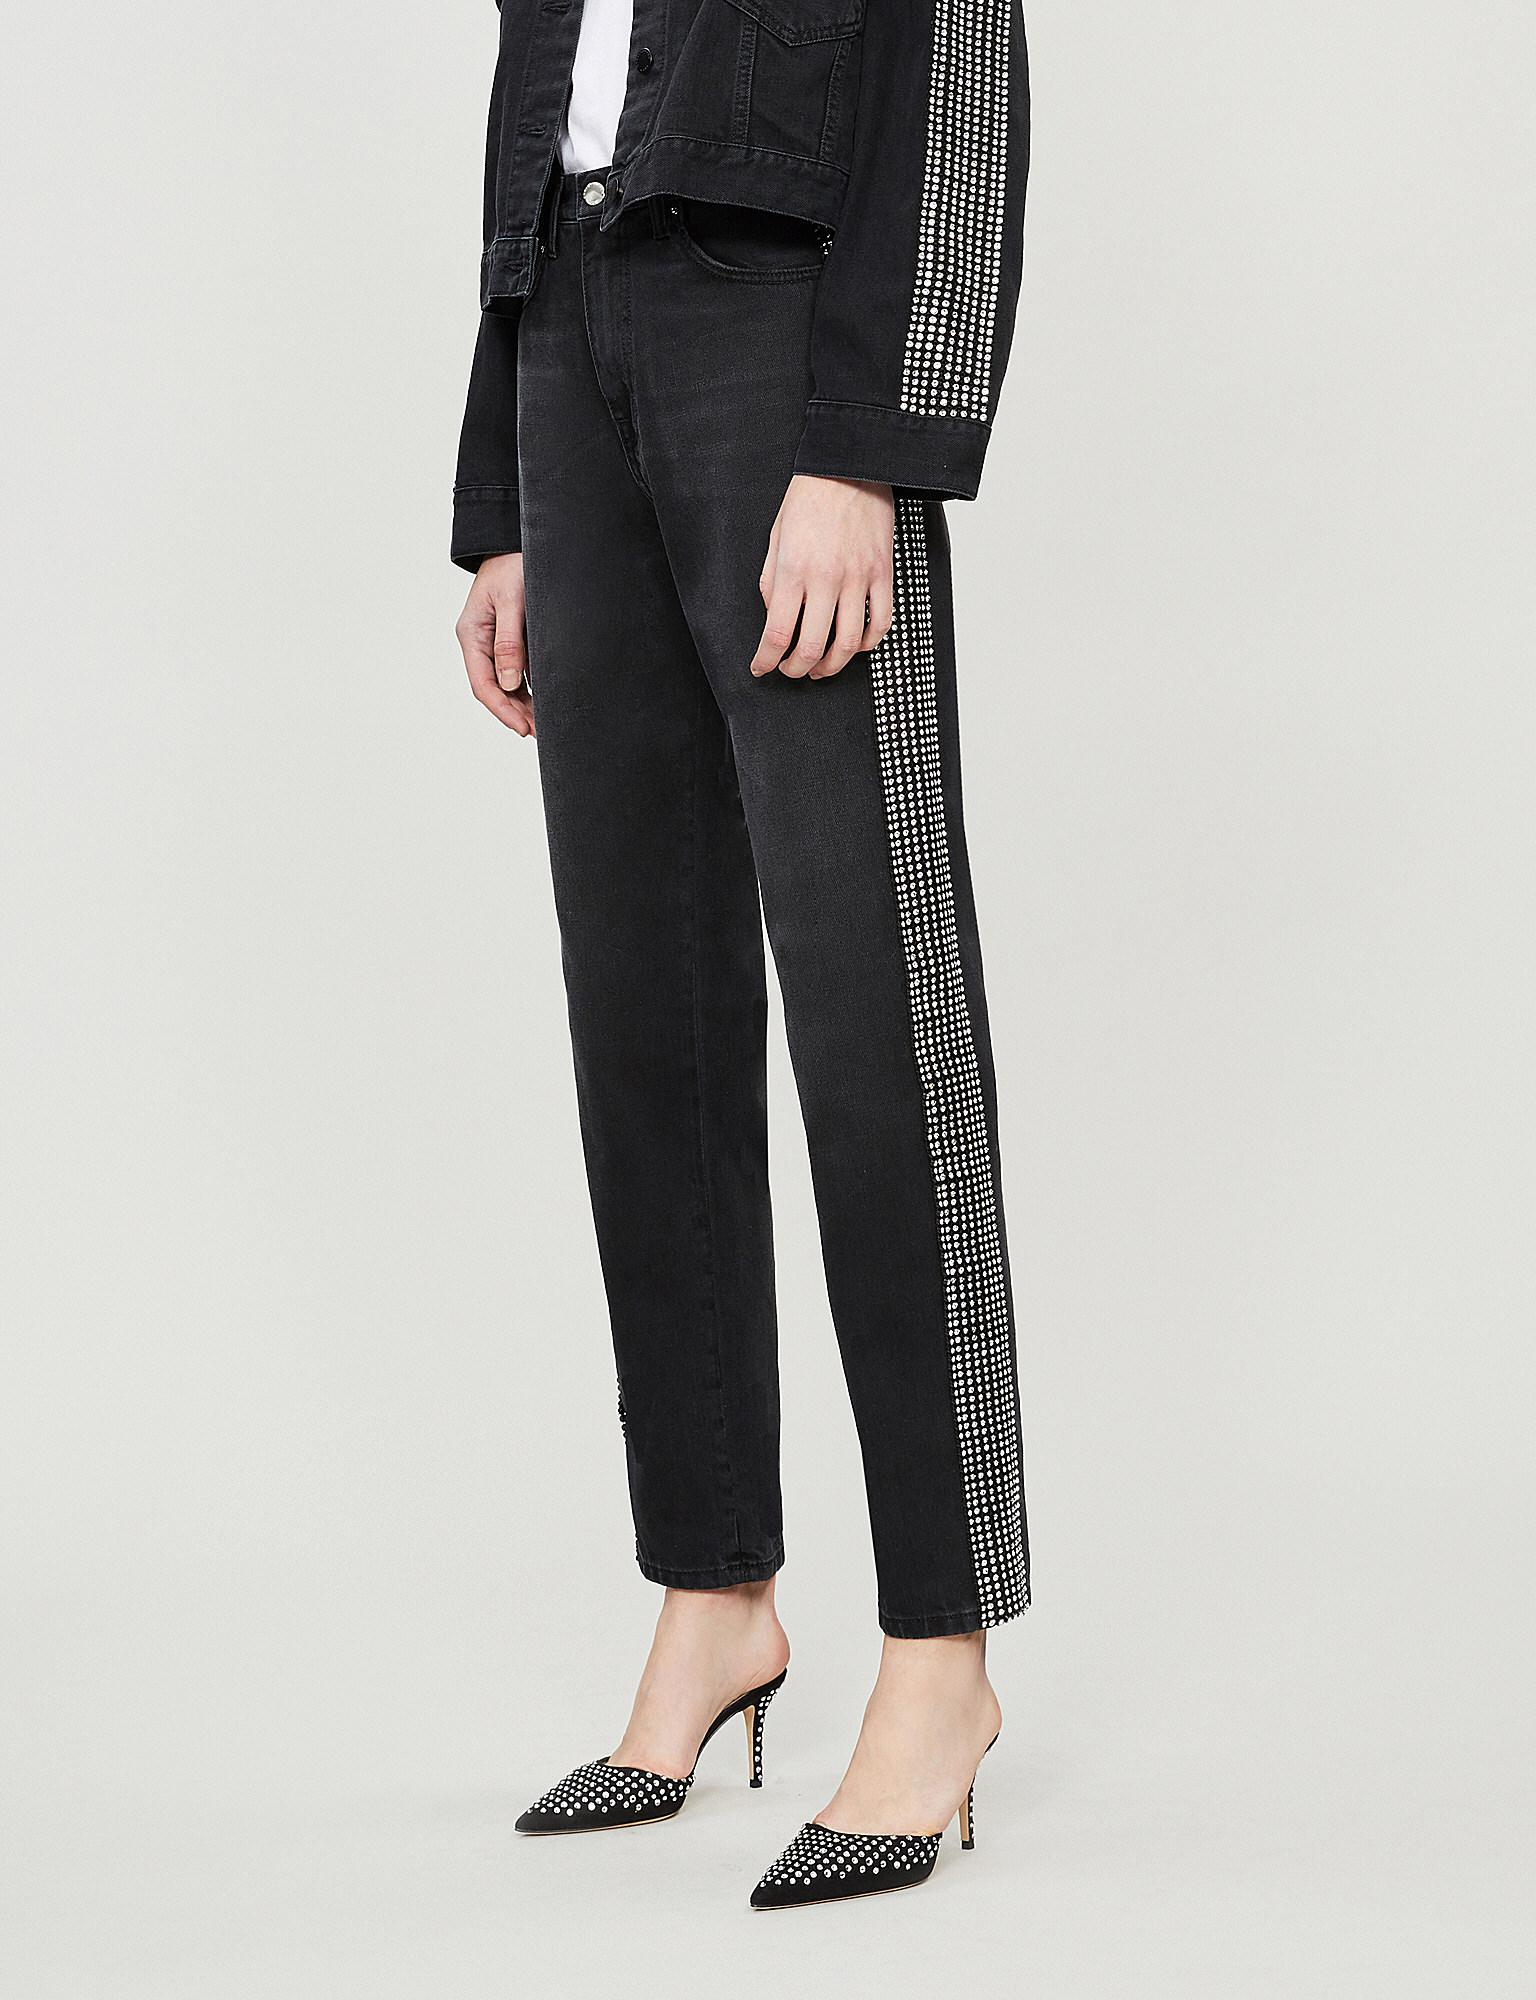 Kane Christopher Crystal High Rise Straight Jeans Embellished In cR5AjqLS34